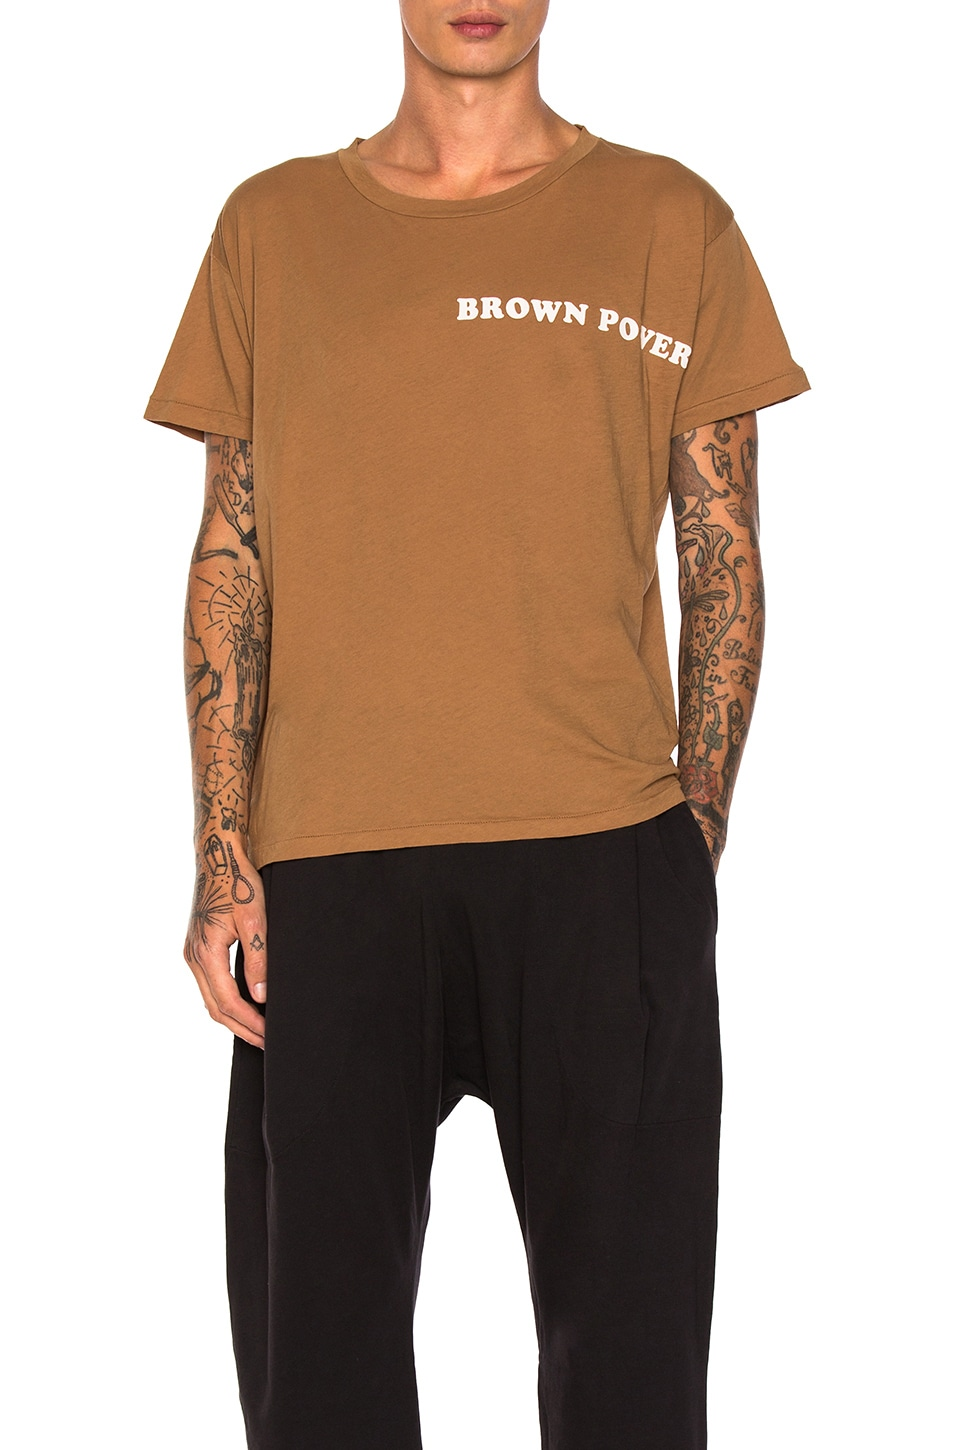 Brown Power Tee by Willy Chavarria